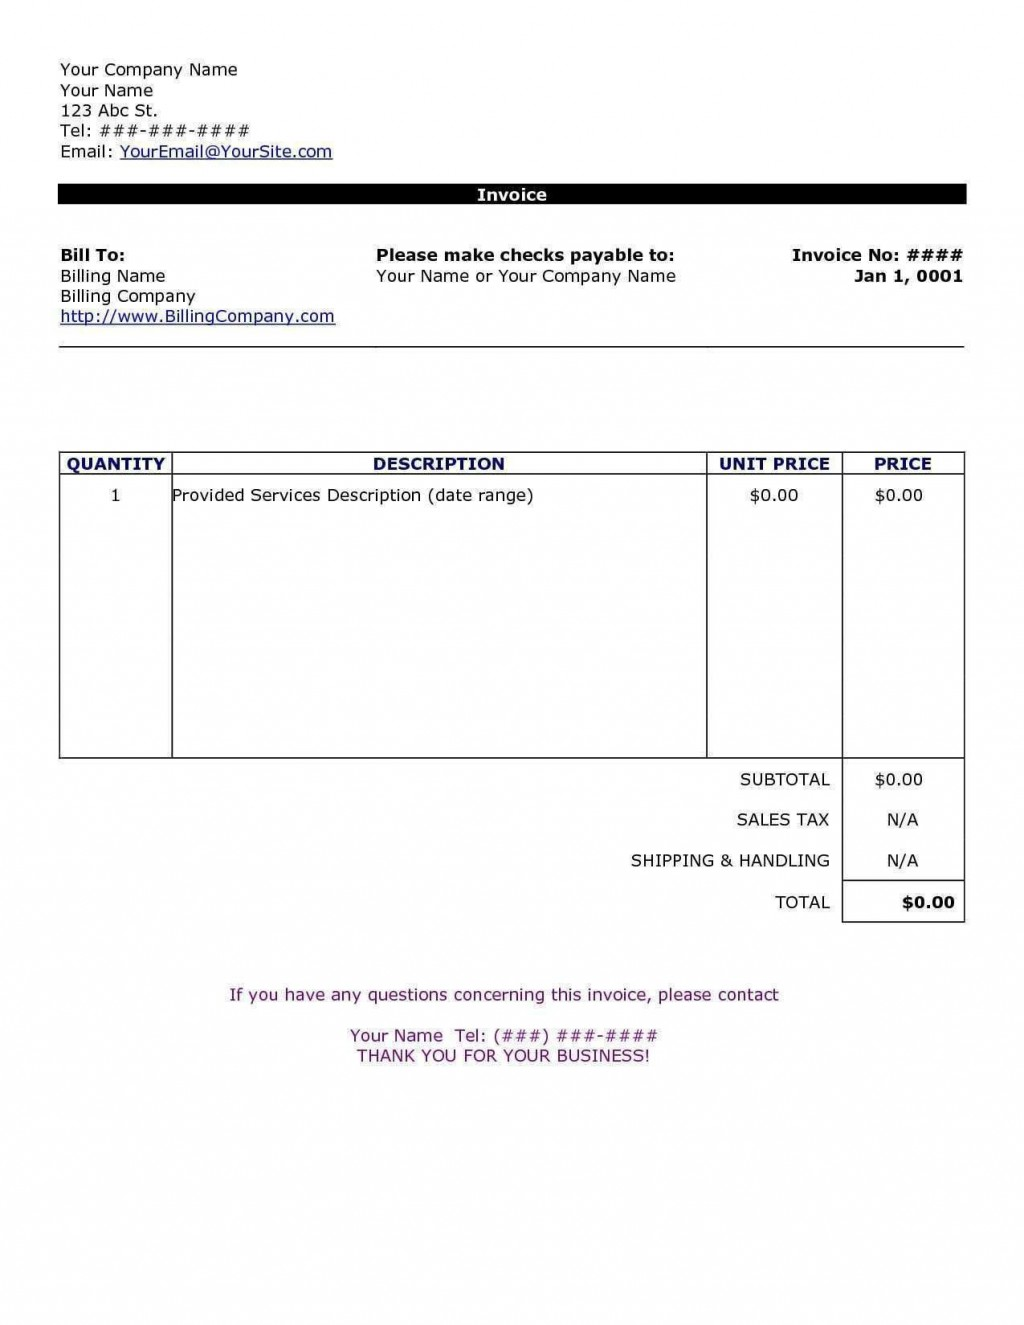 001 Remarkable Free Tax Invoice Template Excel South Africa High Resolution Large